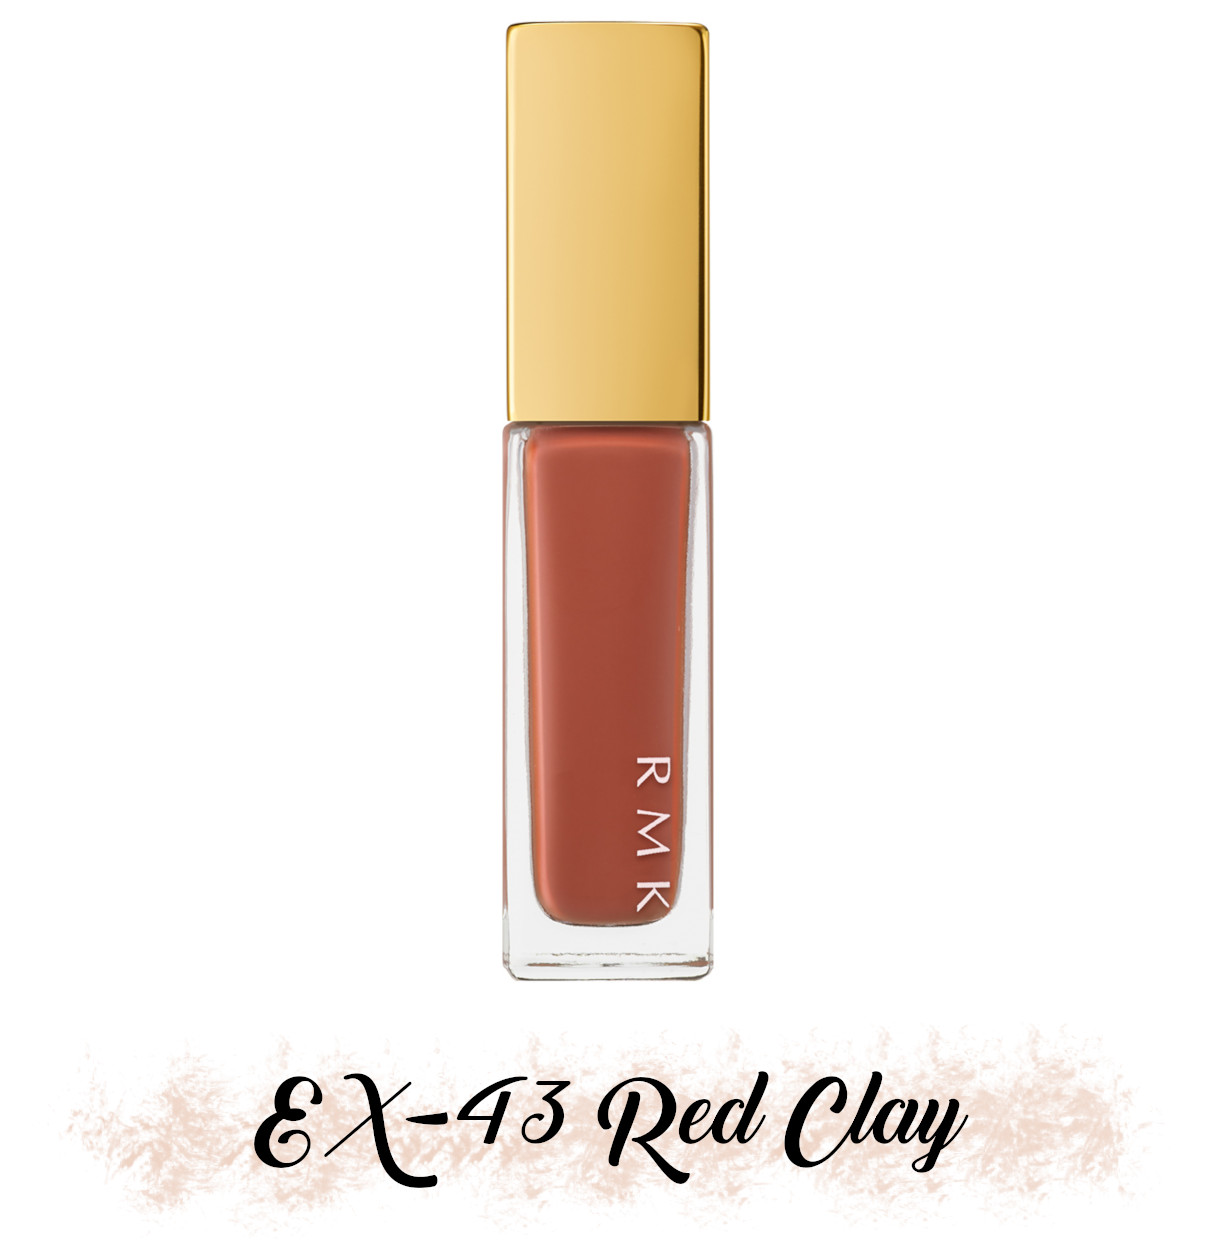 RMK Fall 2021 Collection Rosewood Daydream Nail Polish EX-43 Red Clay